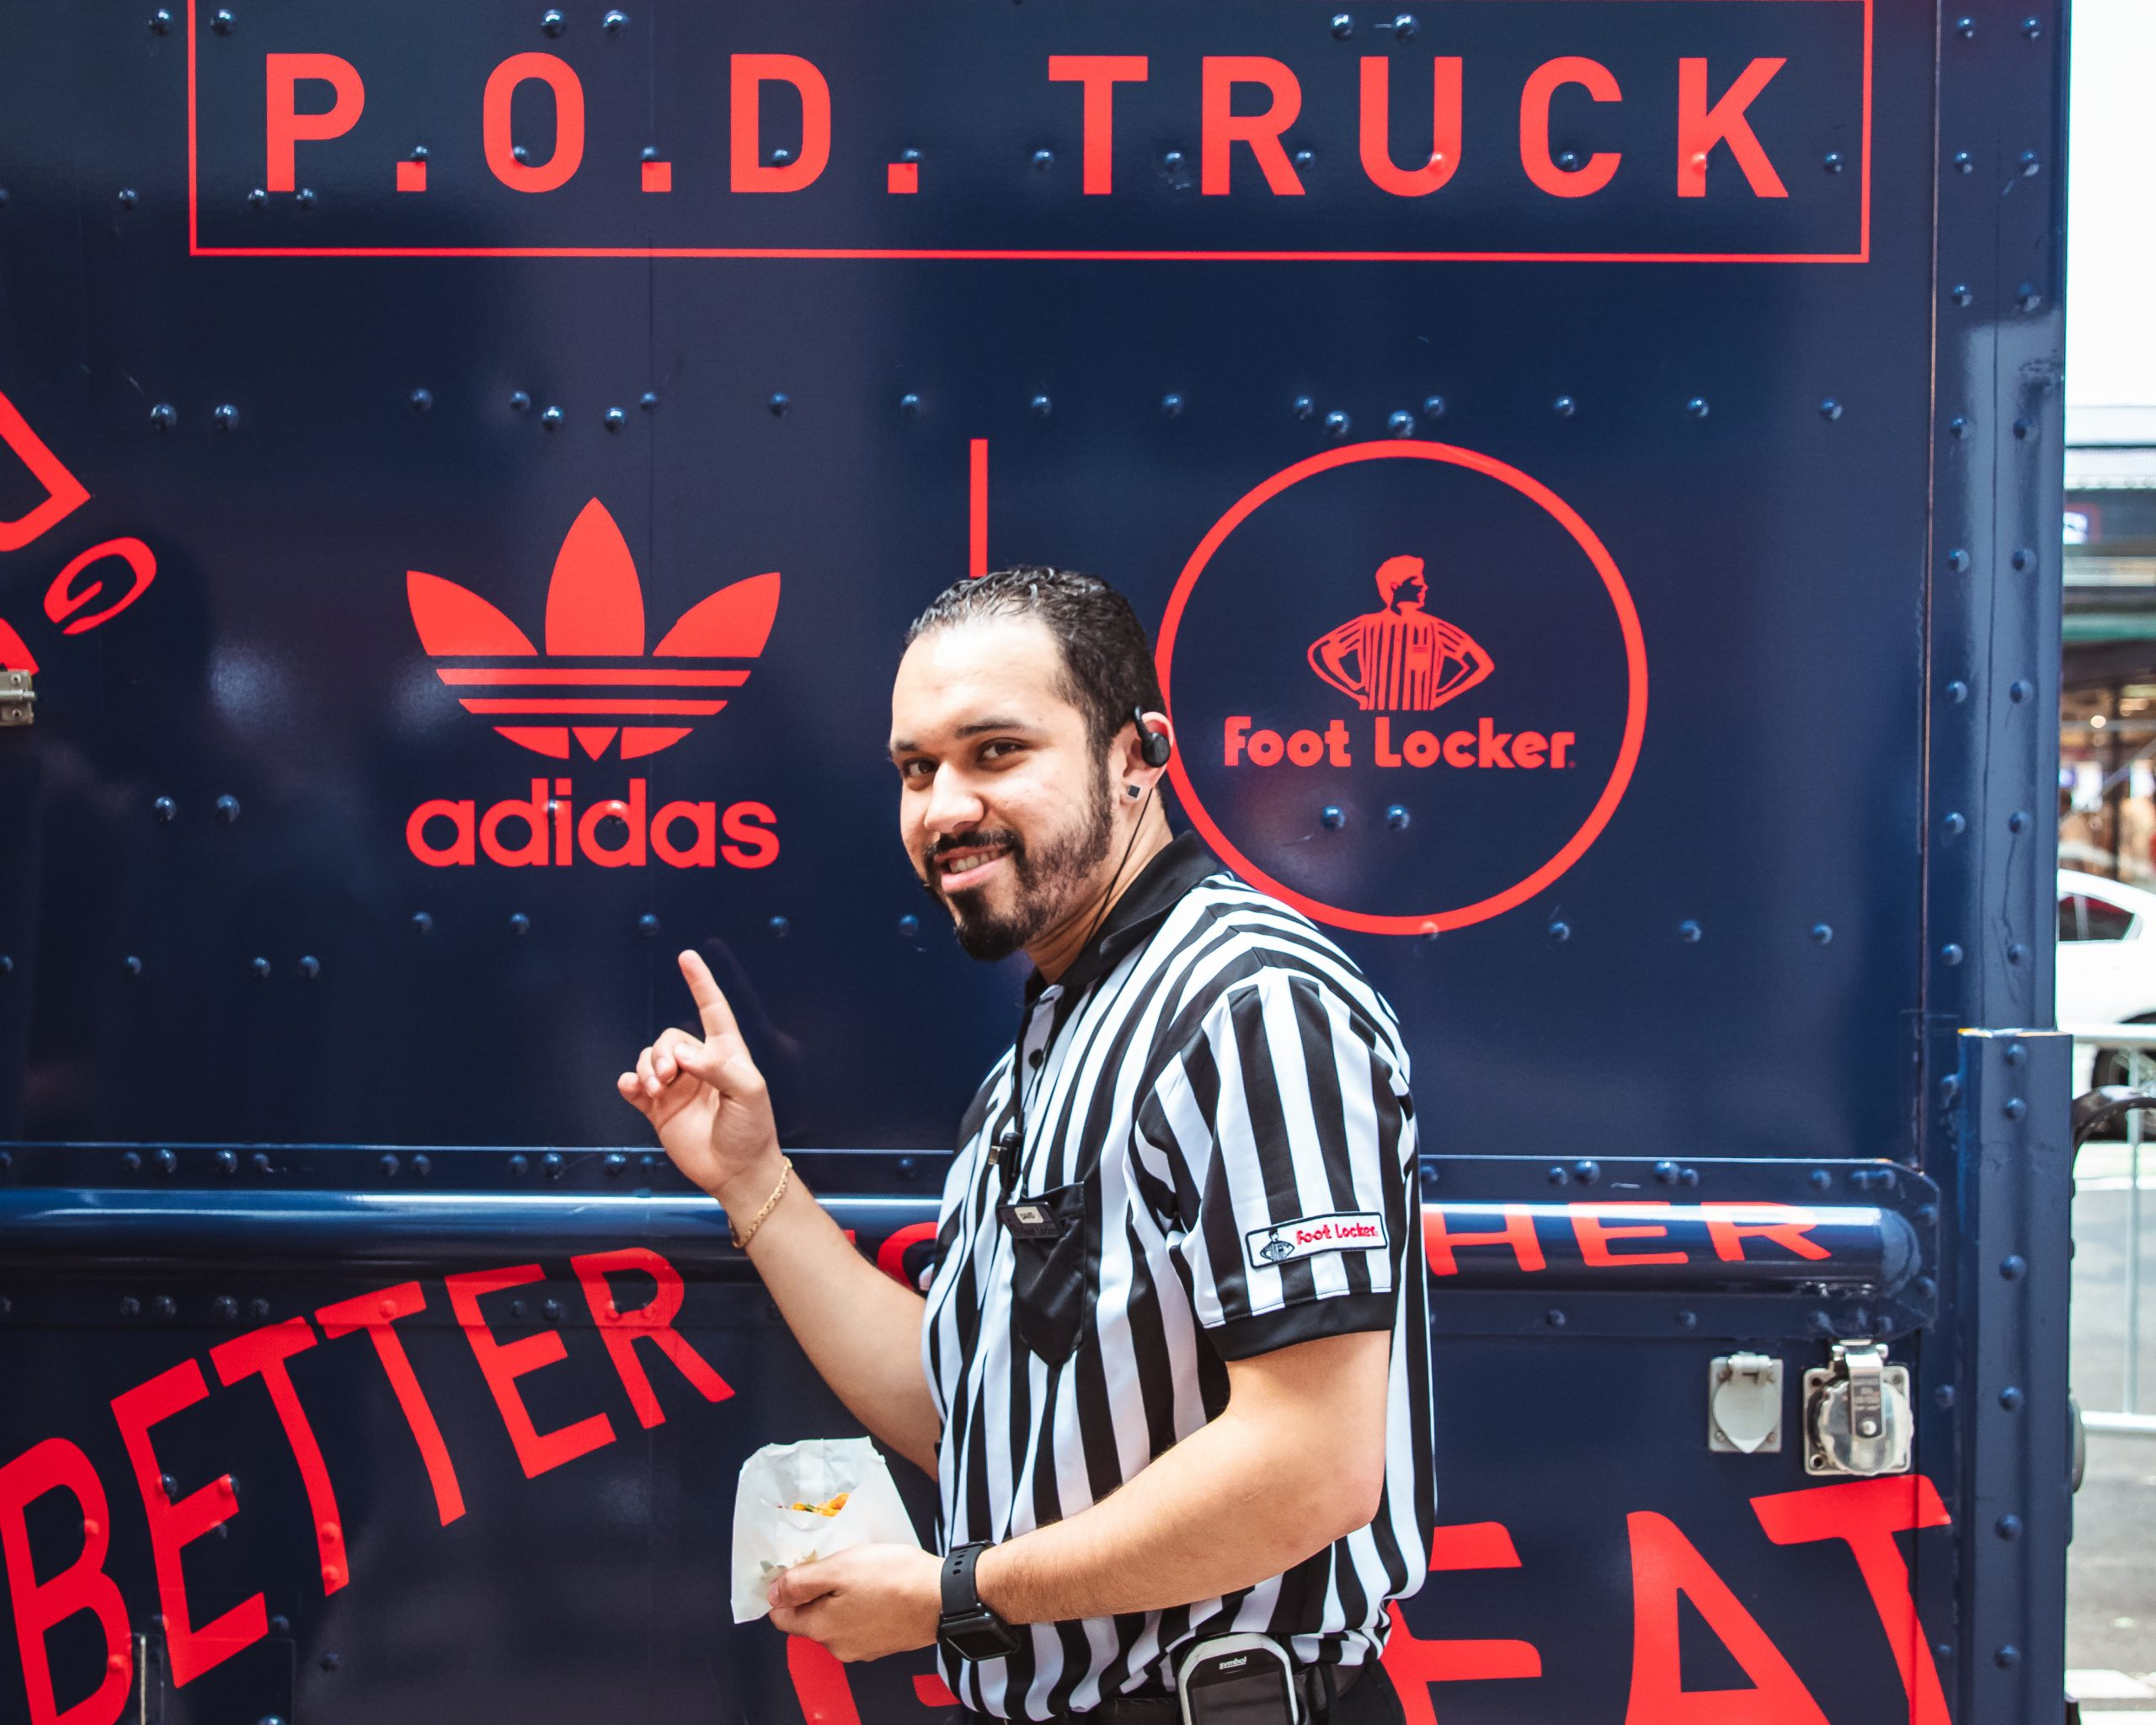 Adidas Food Locker Wrapped Food Truck Example